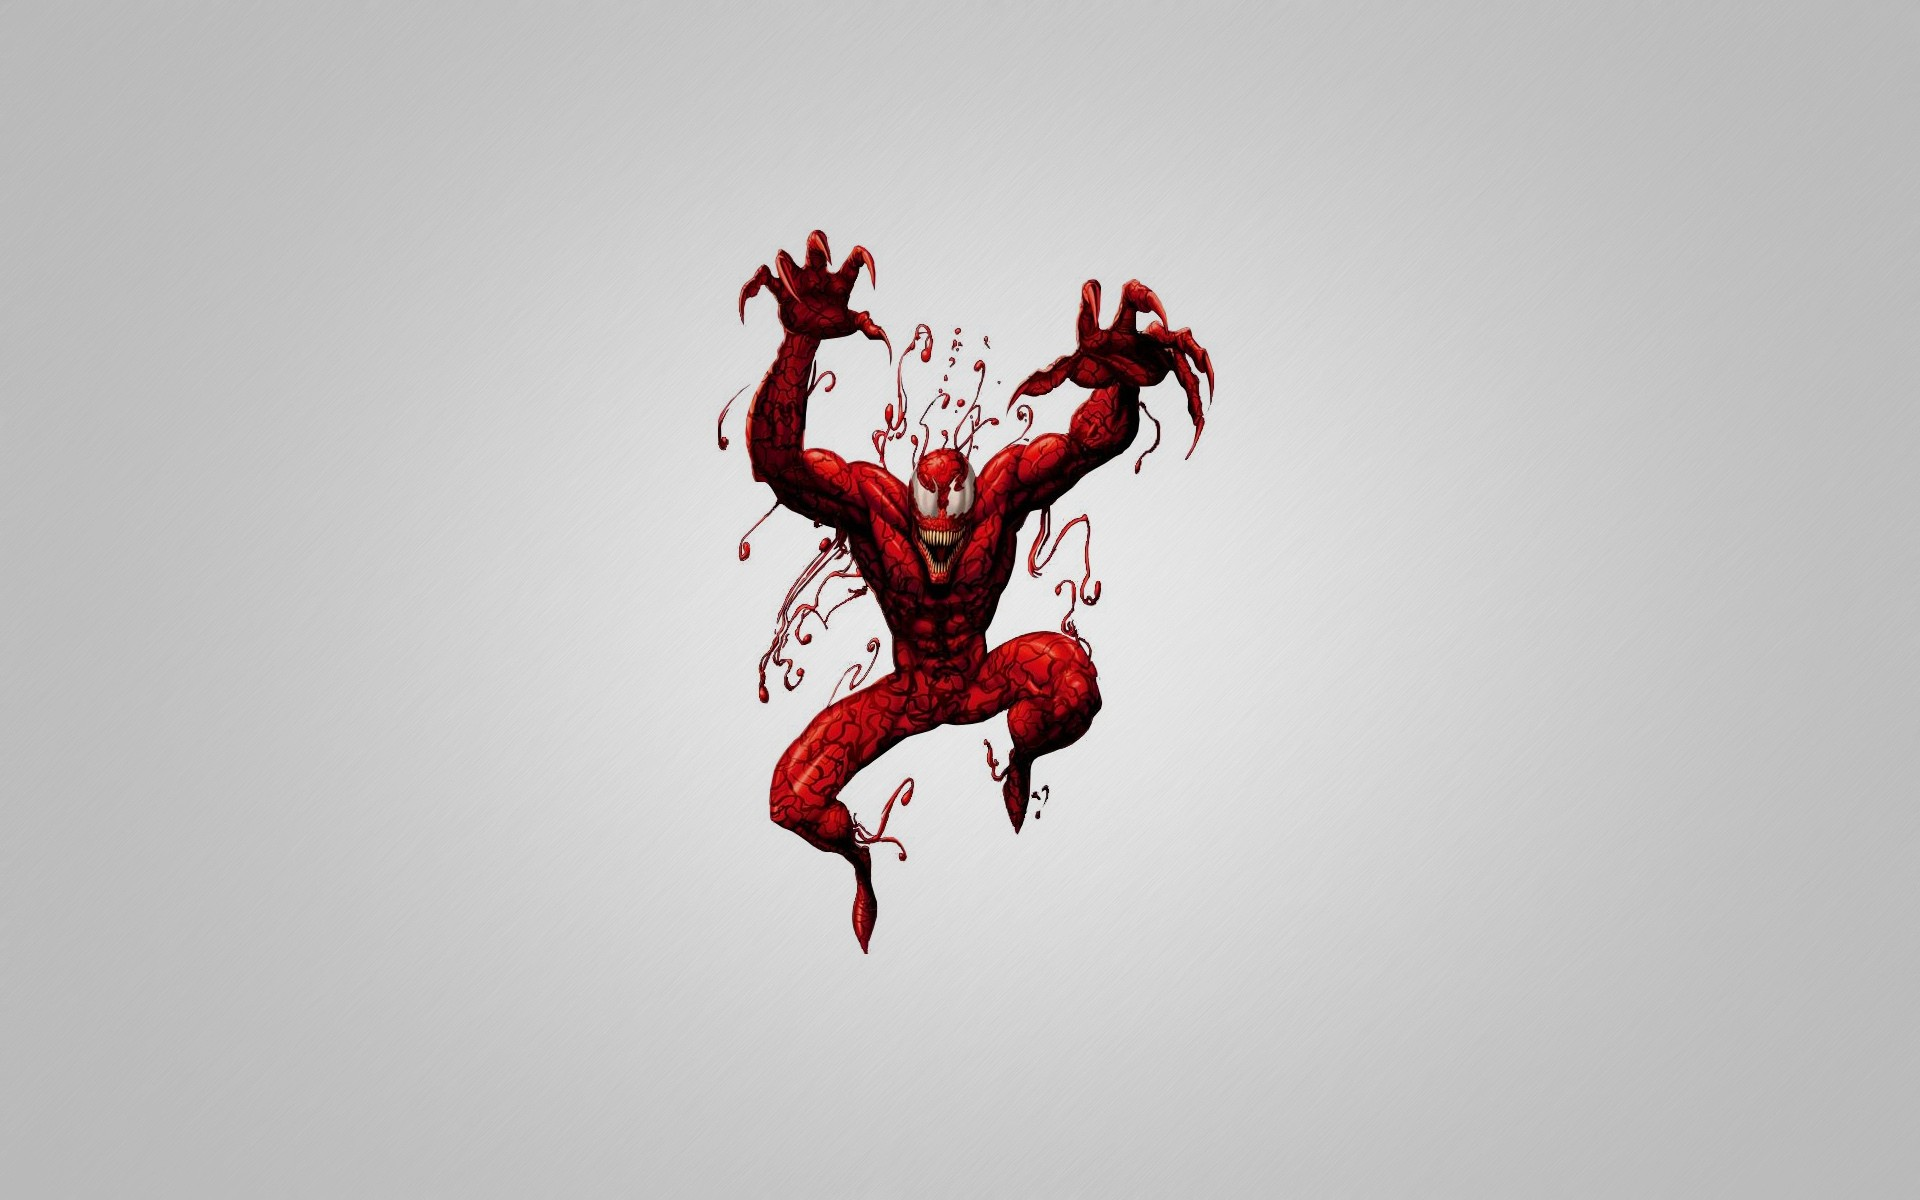 Image Spider Man Carnage Illustration Wallpapers And Stock Photos